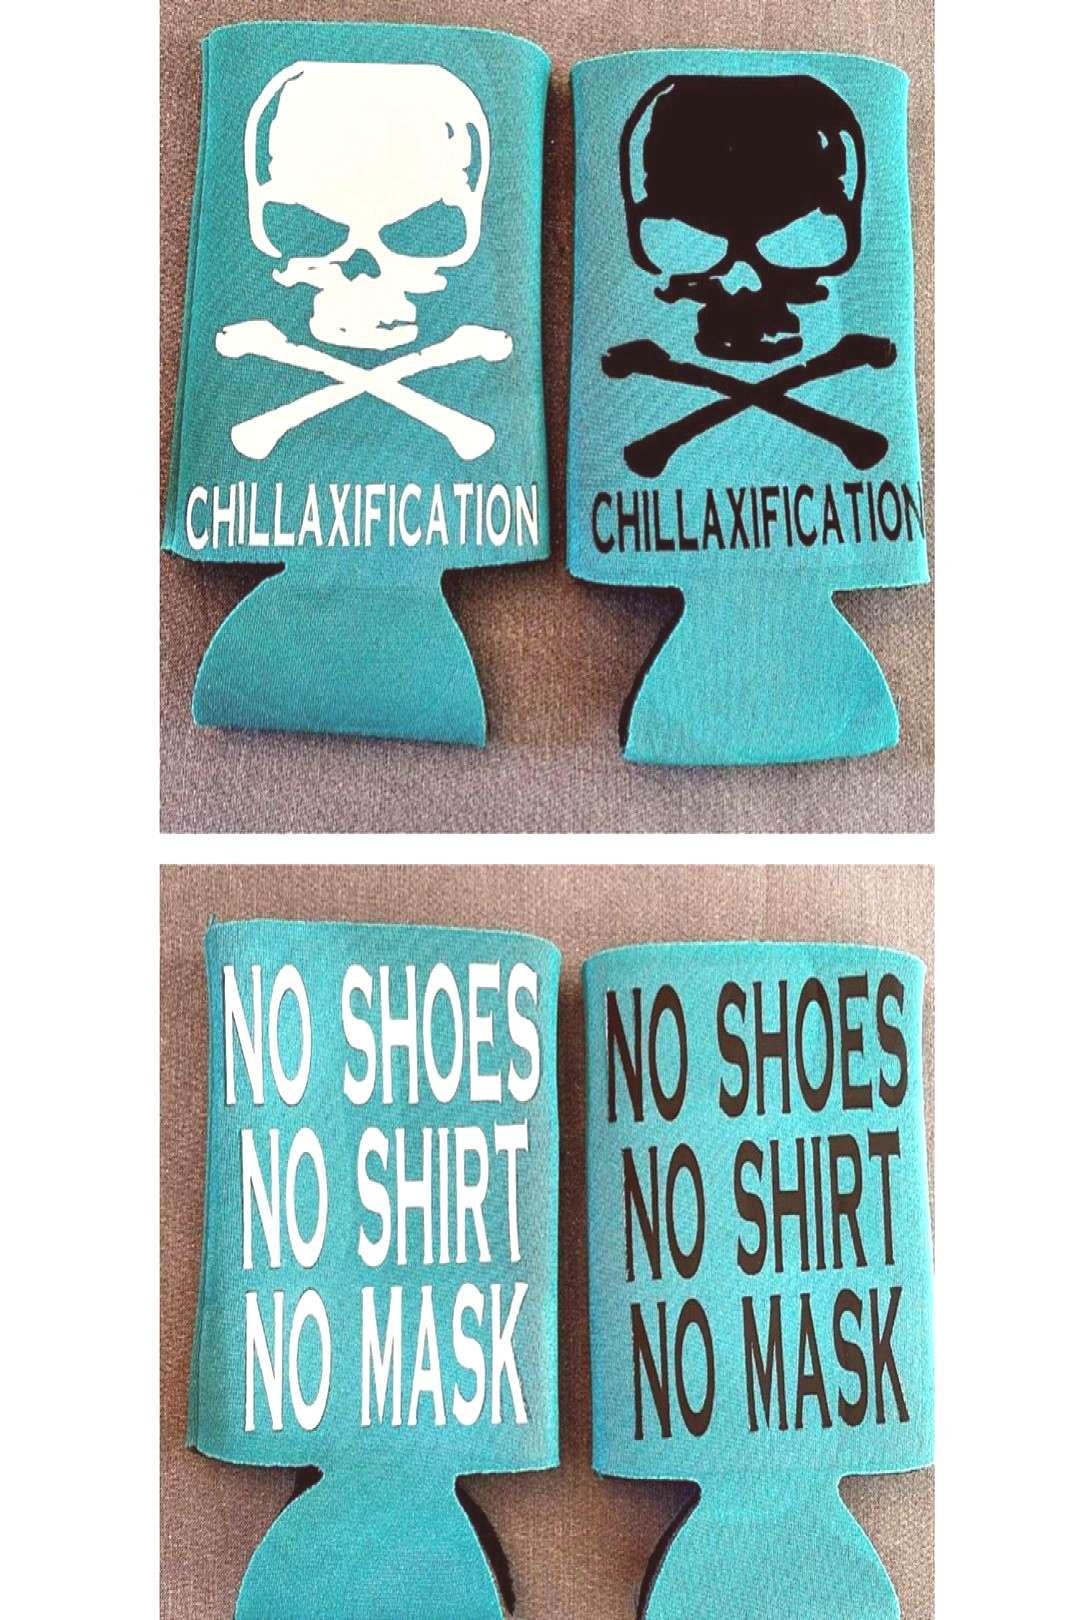 Infinite Crafts Co on June 05 2020 text that says CHILLAXIFICATIO